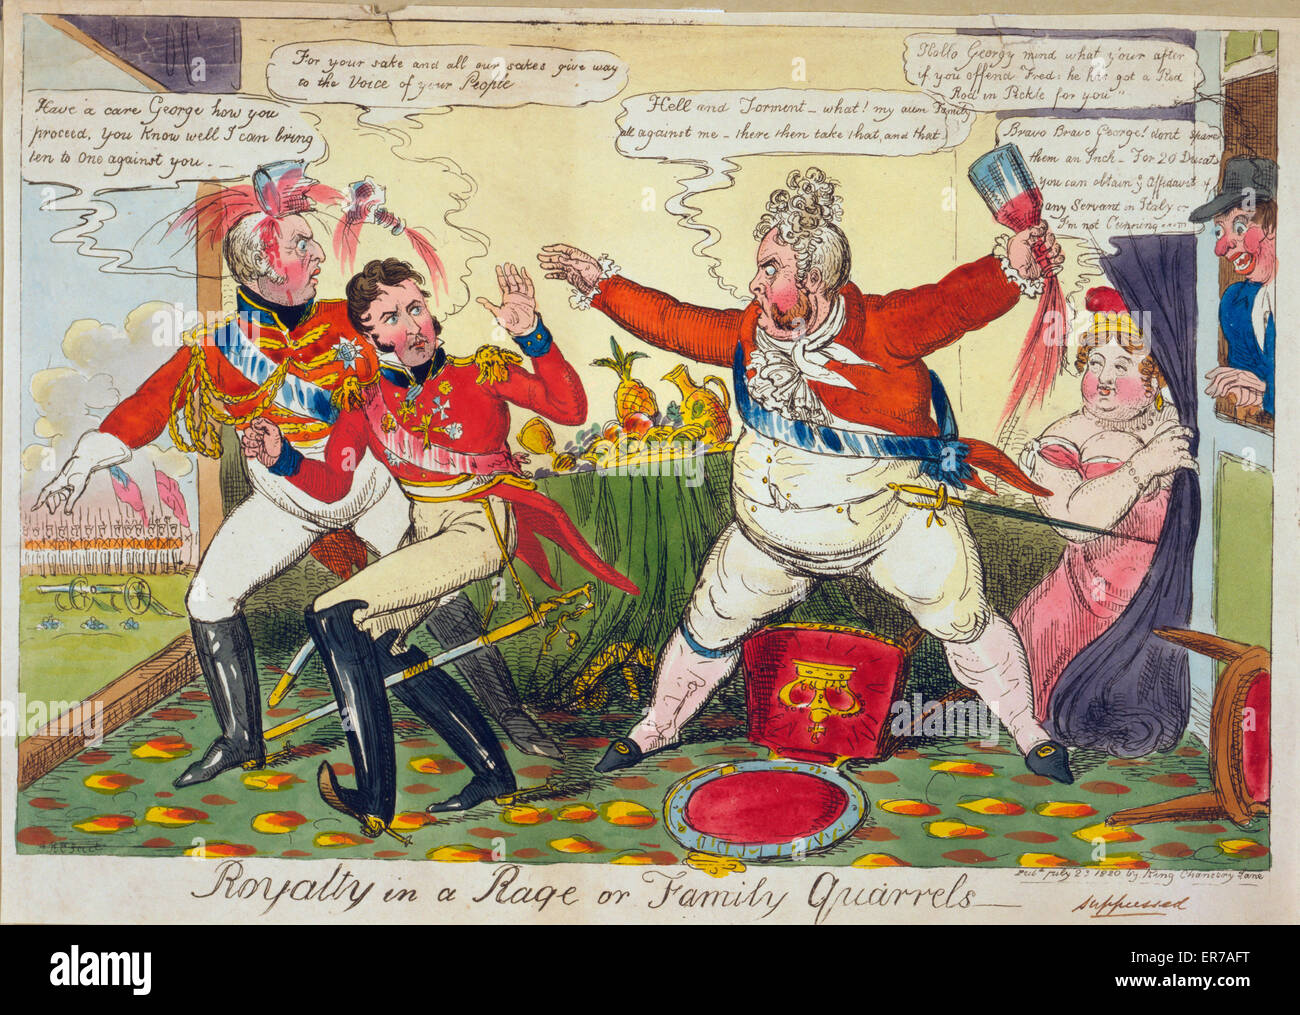 Royalty in a rage or family quarrels. Print showing George IV in a rage against family members (Frederick and William) - Stock Image